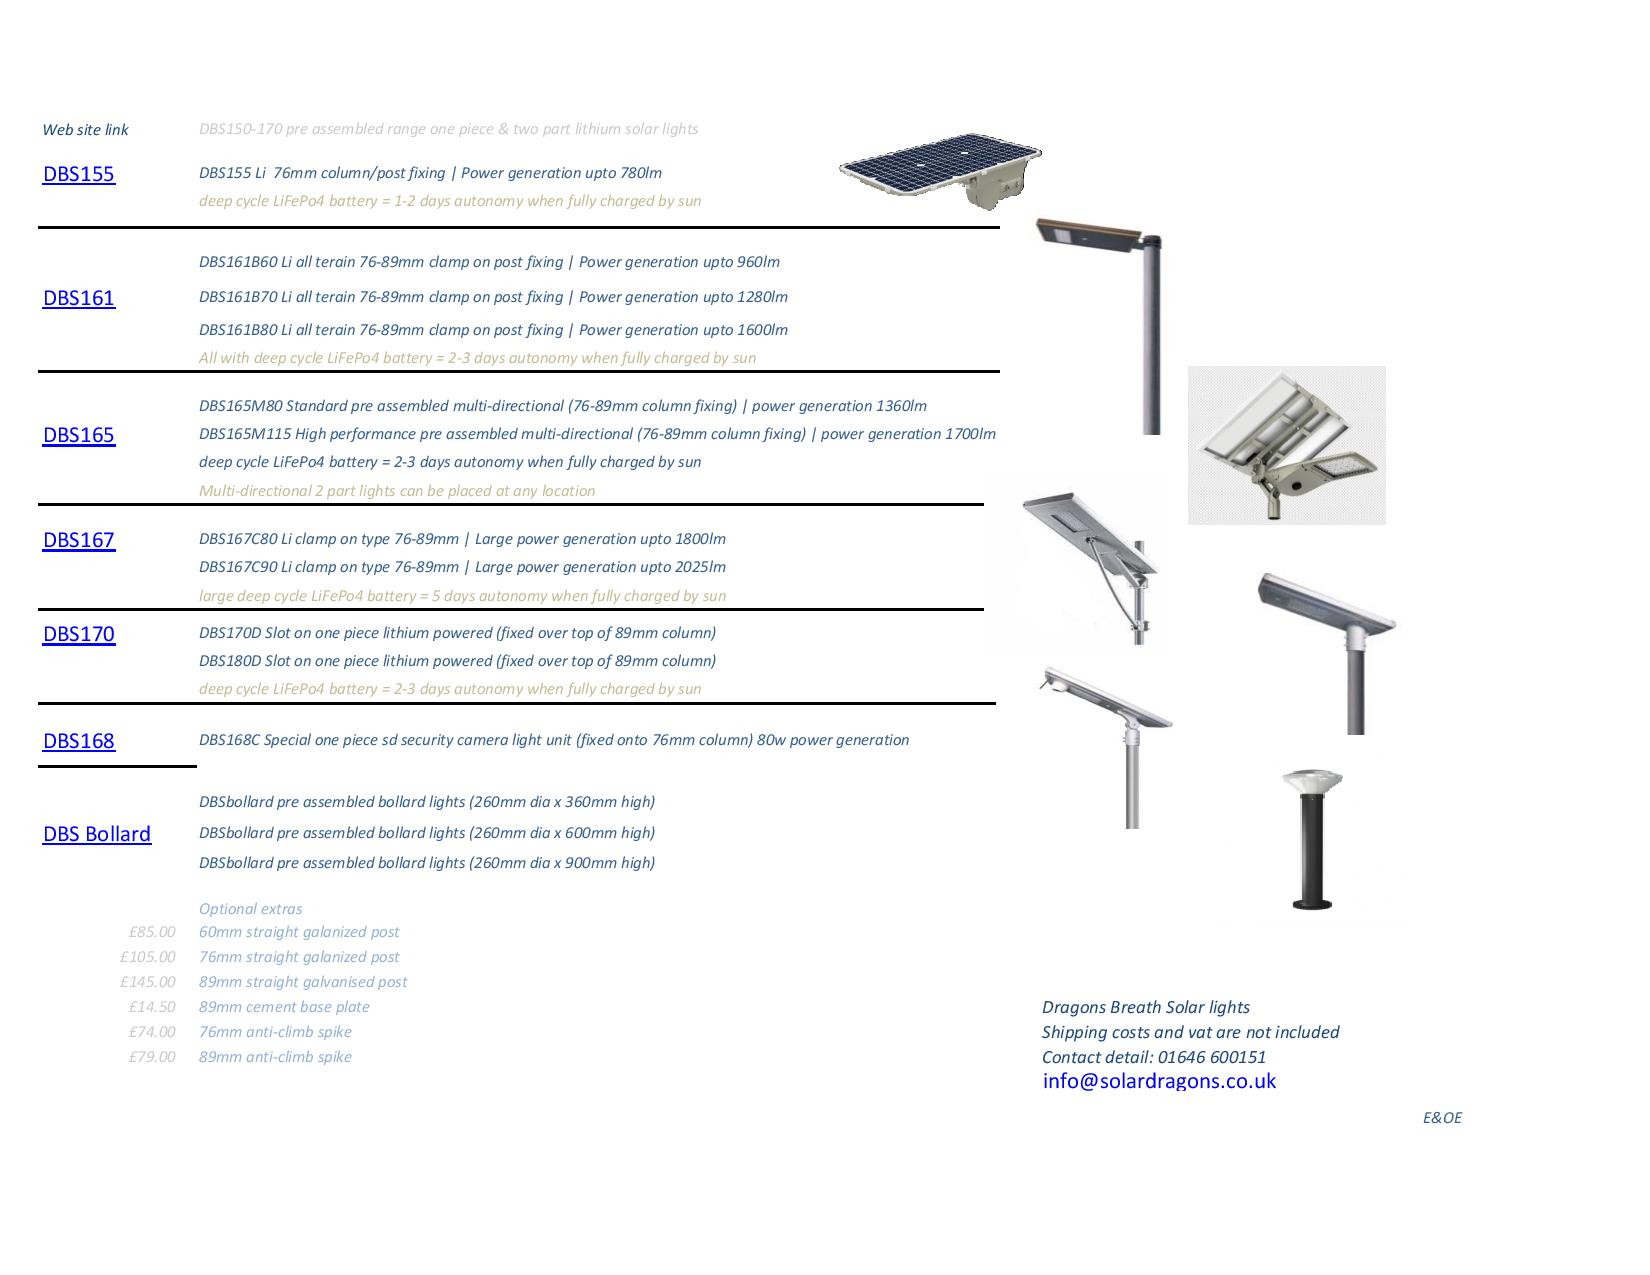 Dragons Breath Solar bespoke street lights web site data links